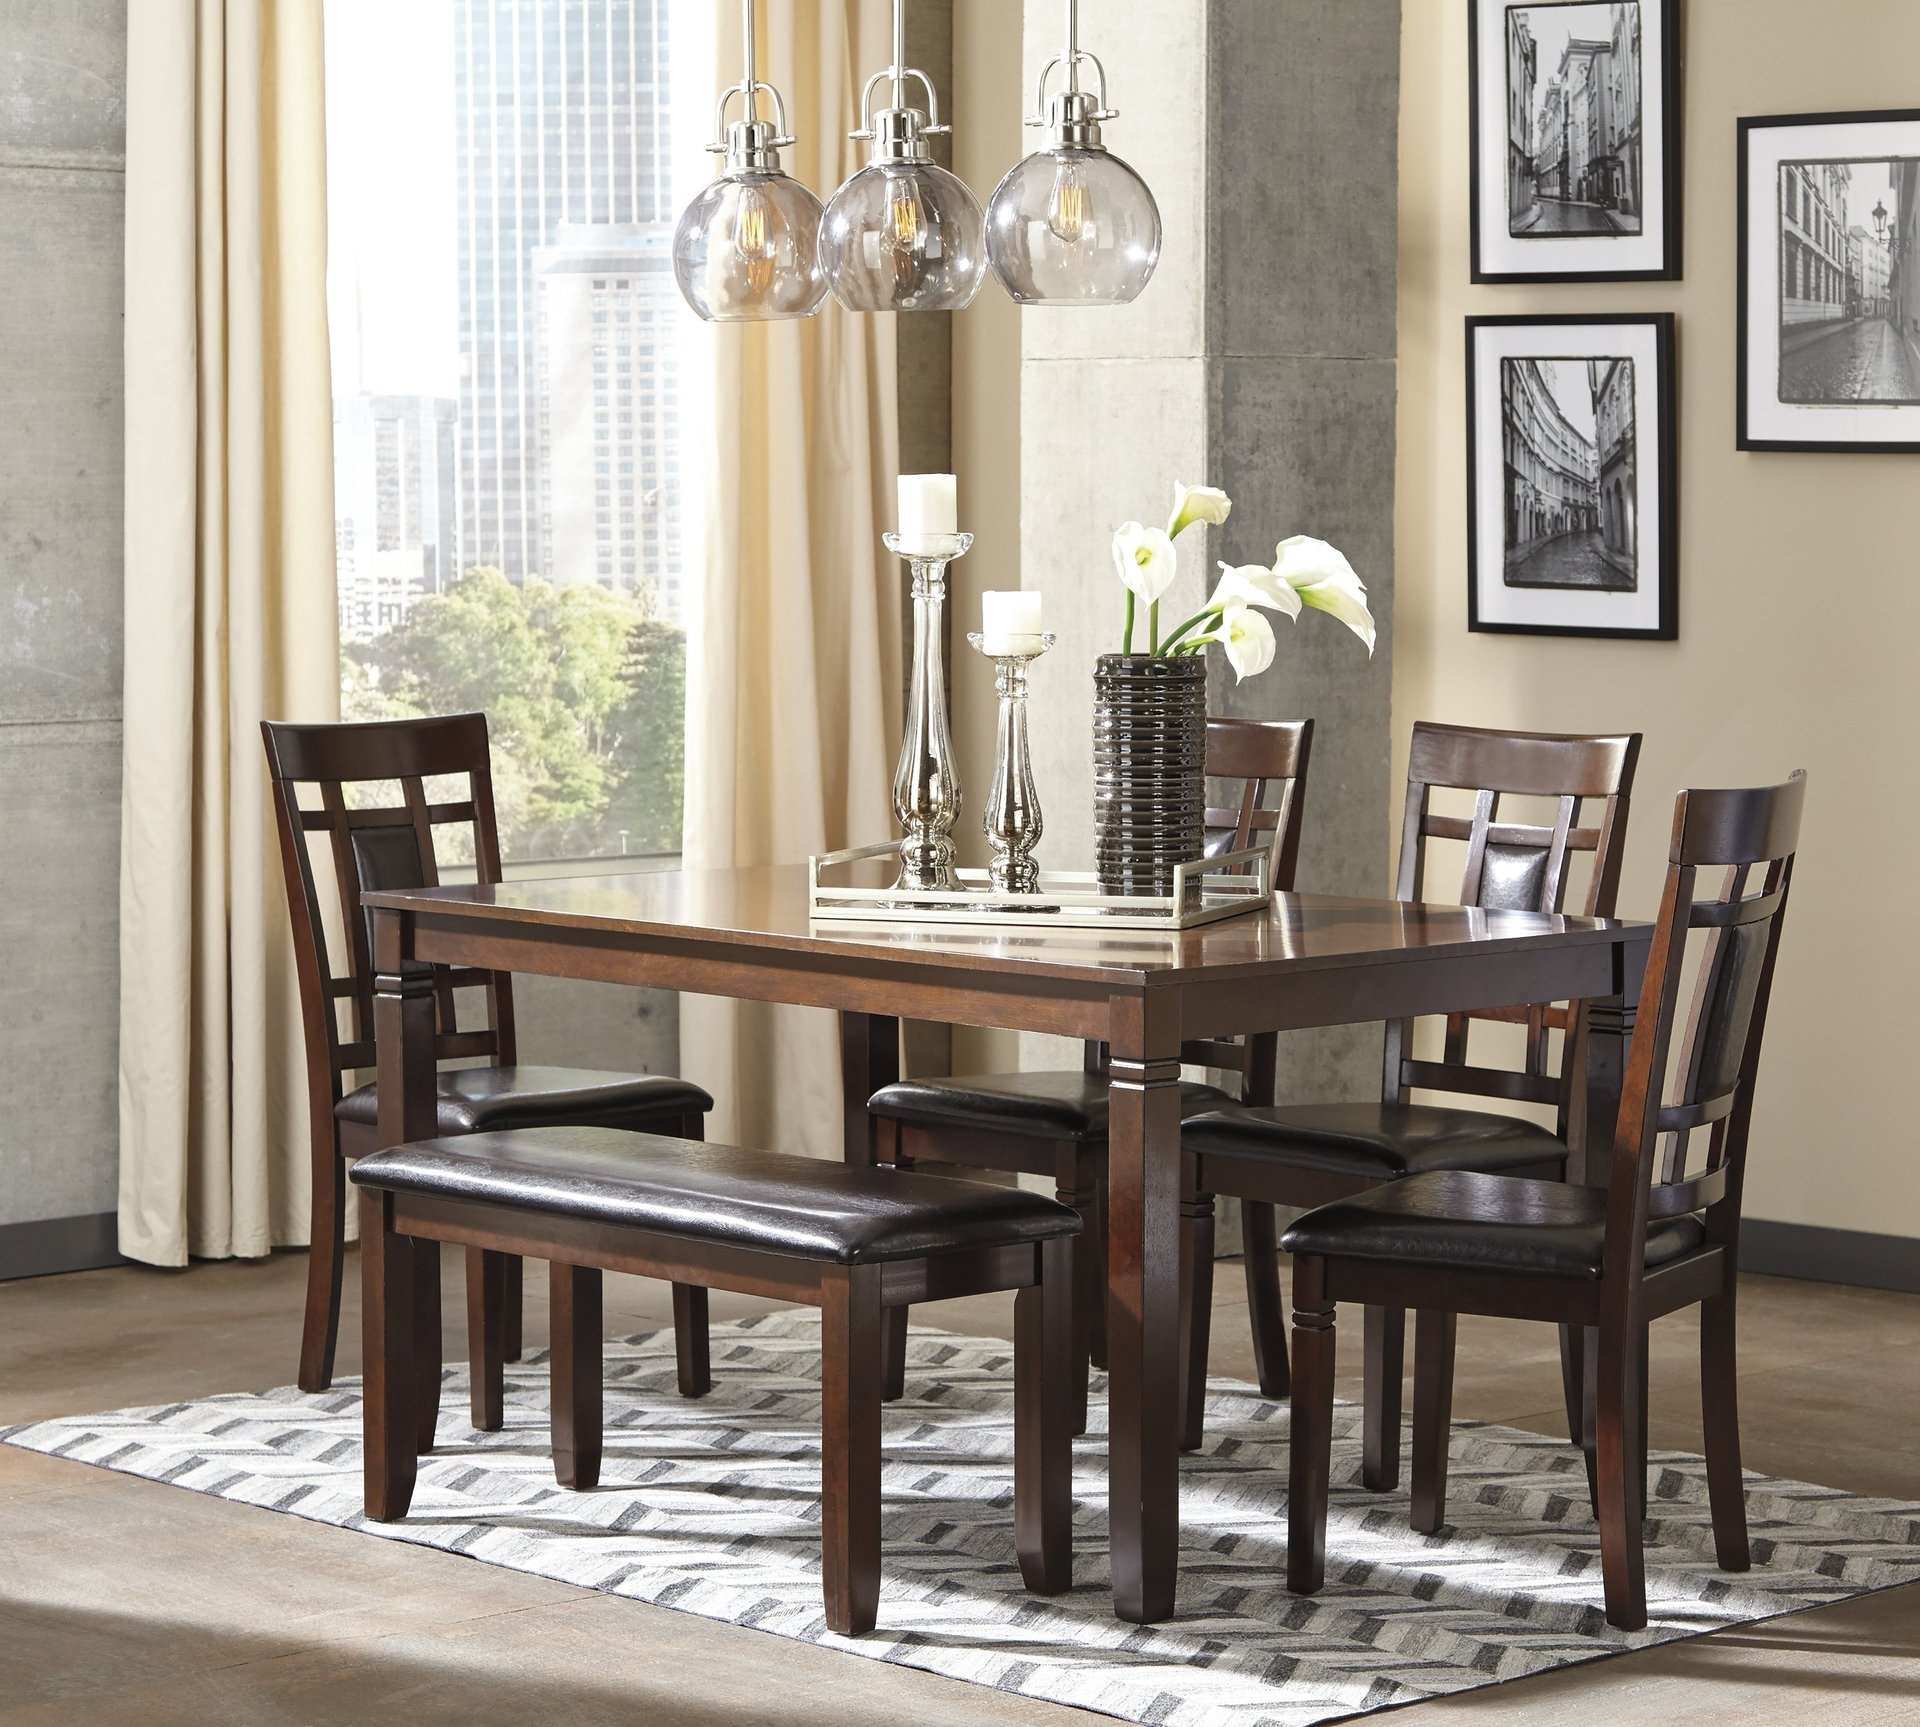 Attirant Bennox 7pc Dining Set